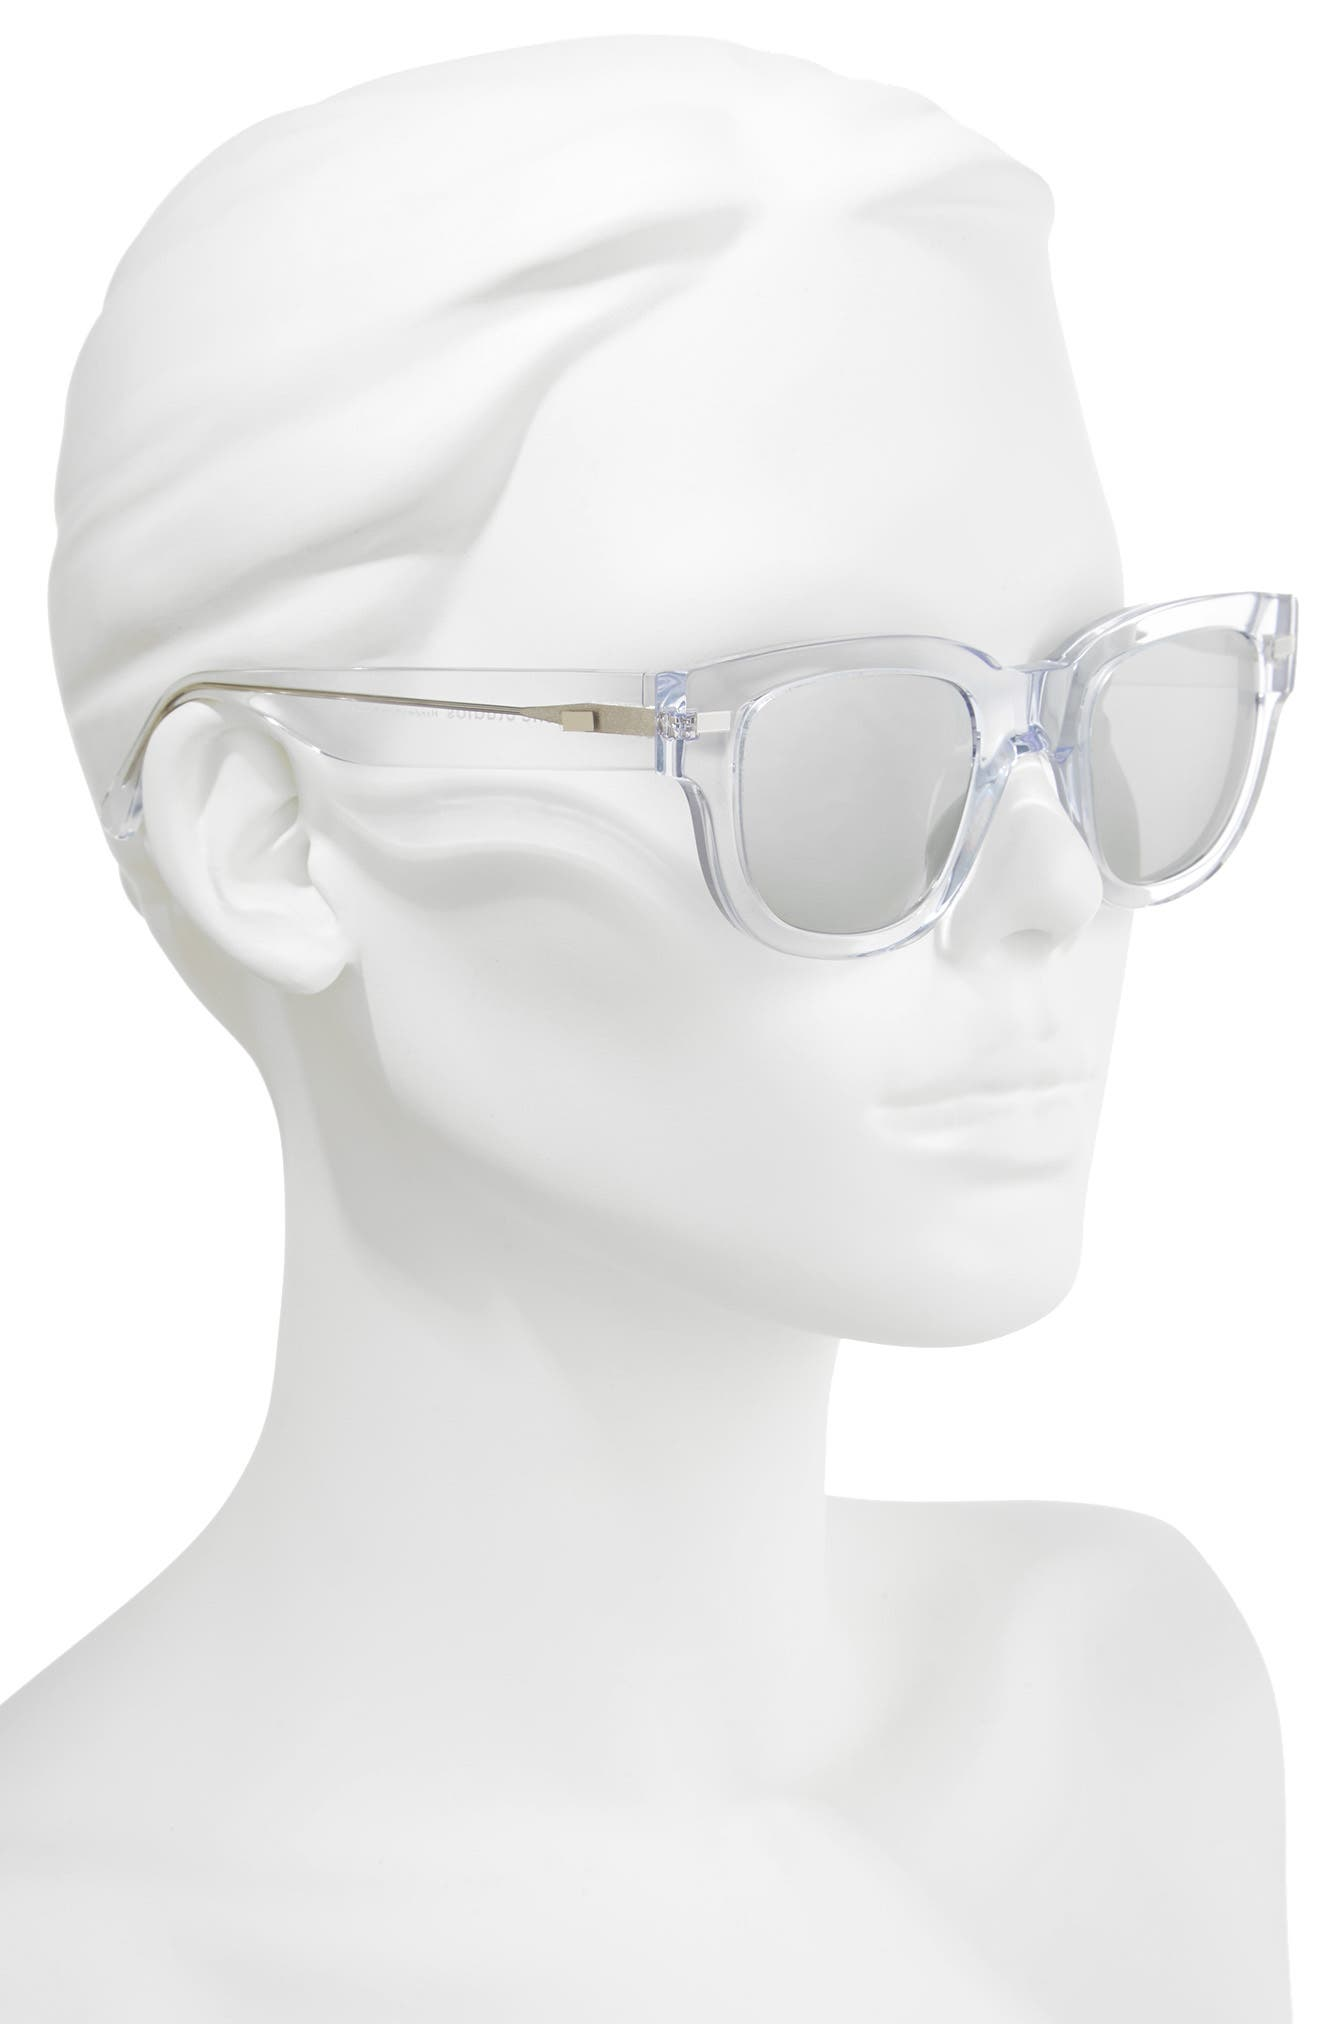 47mm Sunglasses,                             Alternate thumbnail 2, color,                             Clear/ Silver Mirror